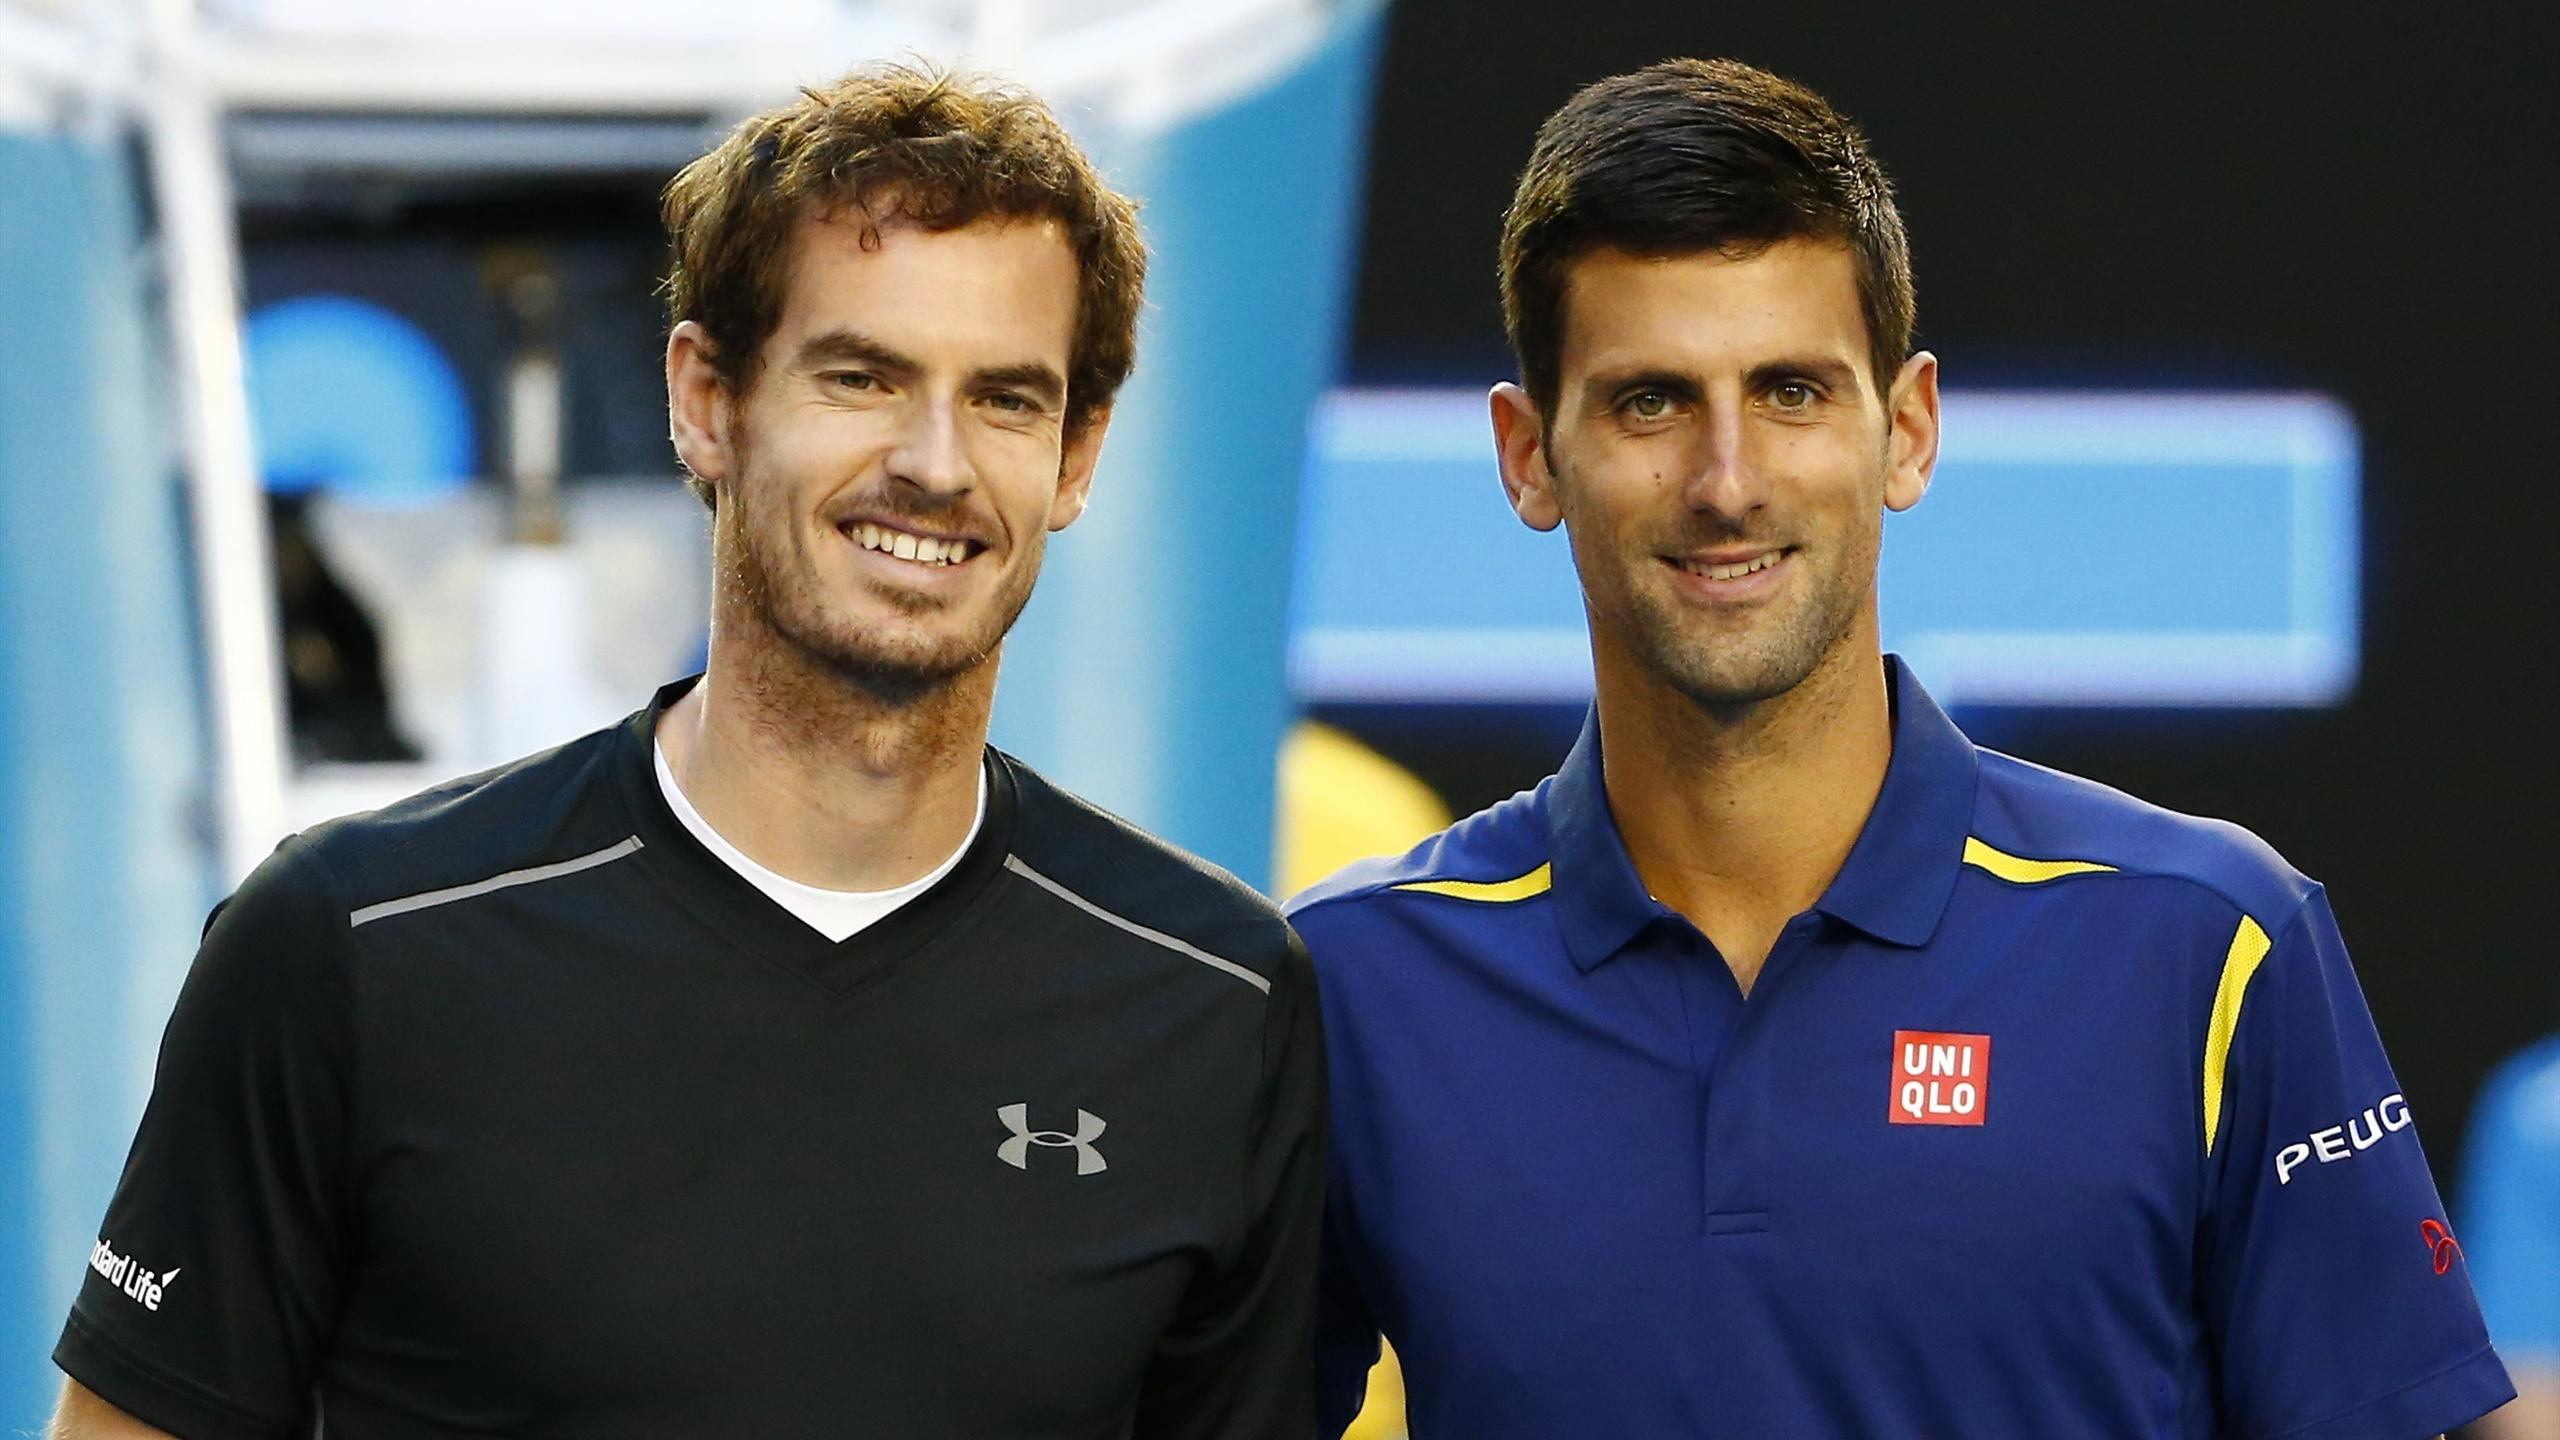 Britain's Andy Murray and Serbia's Novak Djokovic pose for a photo before their final match at the Australian Open